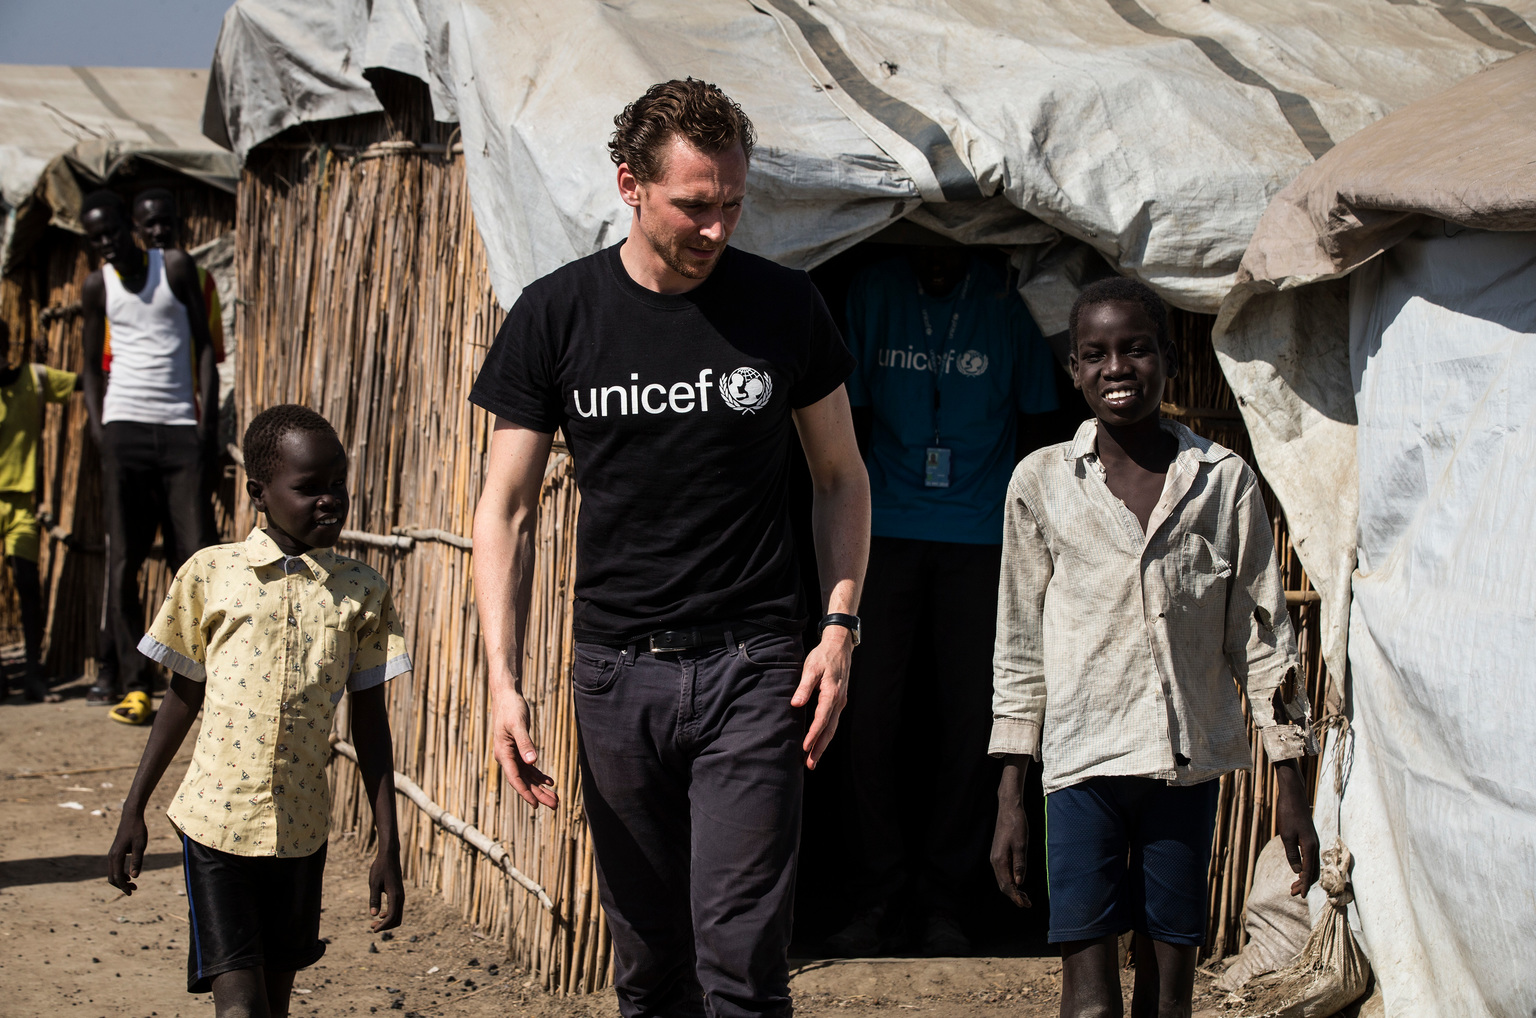 Unicef UK Ambassador Tom Hiddleston meets brothers Buom, 12 (right) and Jal, 9, who have been separated from their mother since the conflict began in 2013,  at the POC (Protection of Civilians) camp in Bentiu, South Sudan, November 25, 2016. Unicef UK Ambassador Tom Hiddleston returns to South Sudan as the brutal conflict enters its third year to see the effect it has had on children.  UNICEF UK/Siegfried Modola EMBARGO 00:01 30 November 2016  UNICEF Ambassador Tom Hiddleston travelled to South Sudan last week to see how the brutal civil war continues to destroy the lives of vast numbers of children across the country. Mid-December will mark three years of conflict in South Sudan. On his second visit since February 2015, Hiddleston saw how conditions remain as fragile and severe as ever.